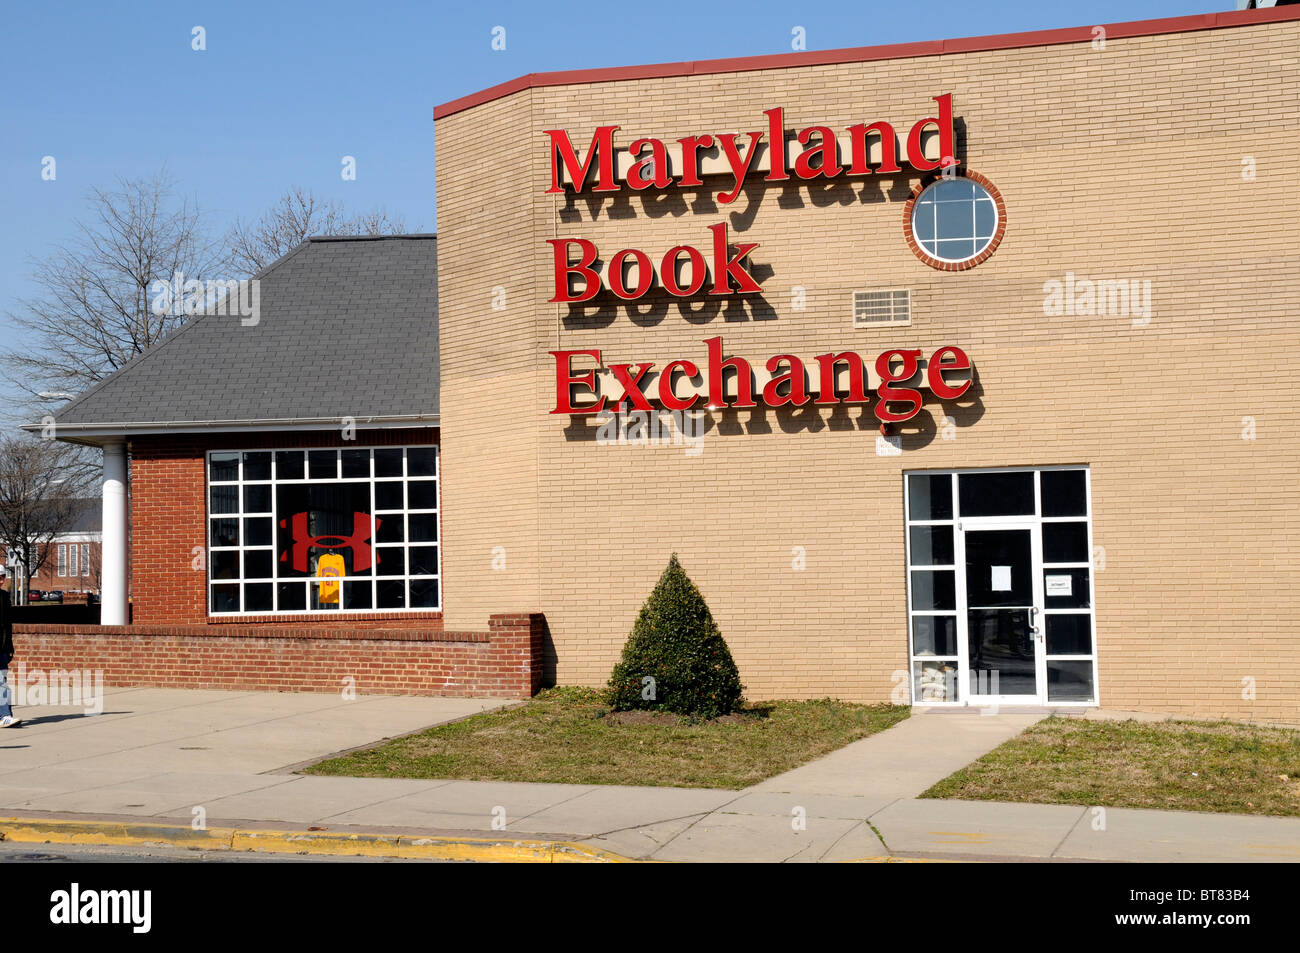 Maryland Book Exchange in College Park, Maryland - Stock Image